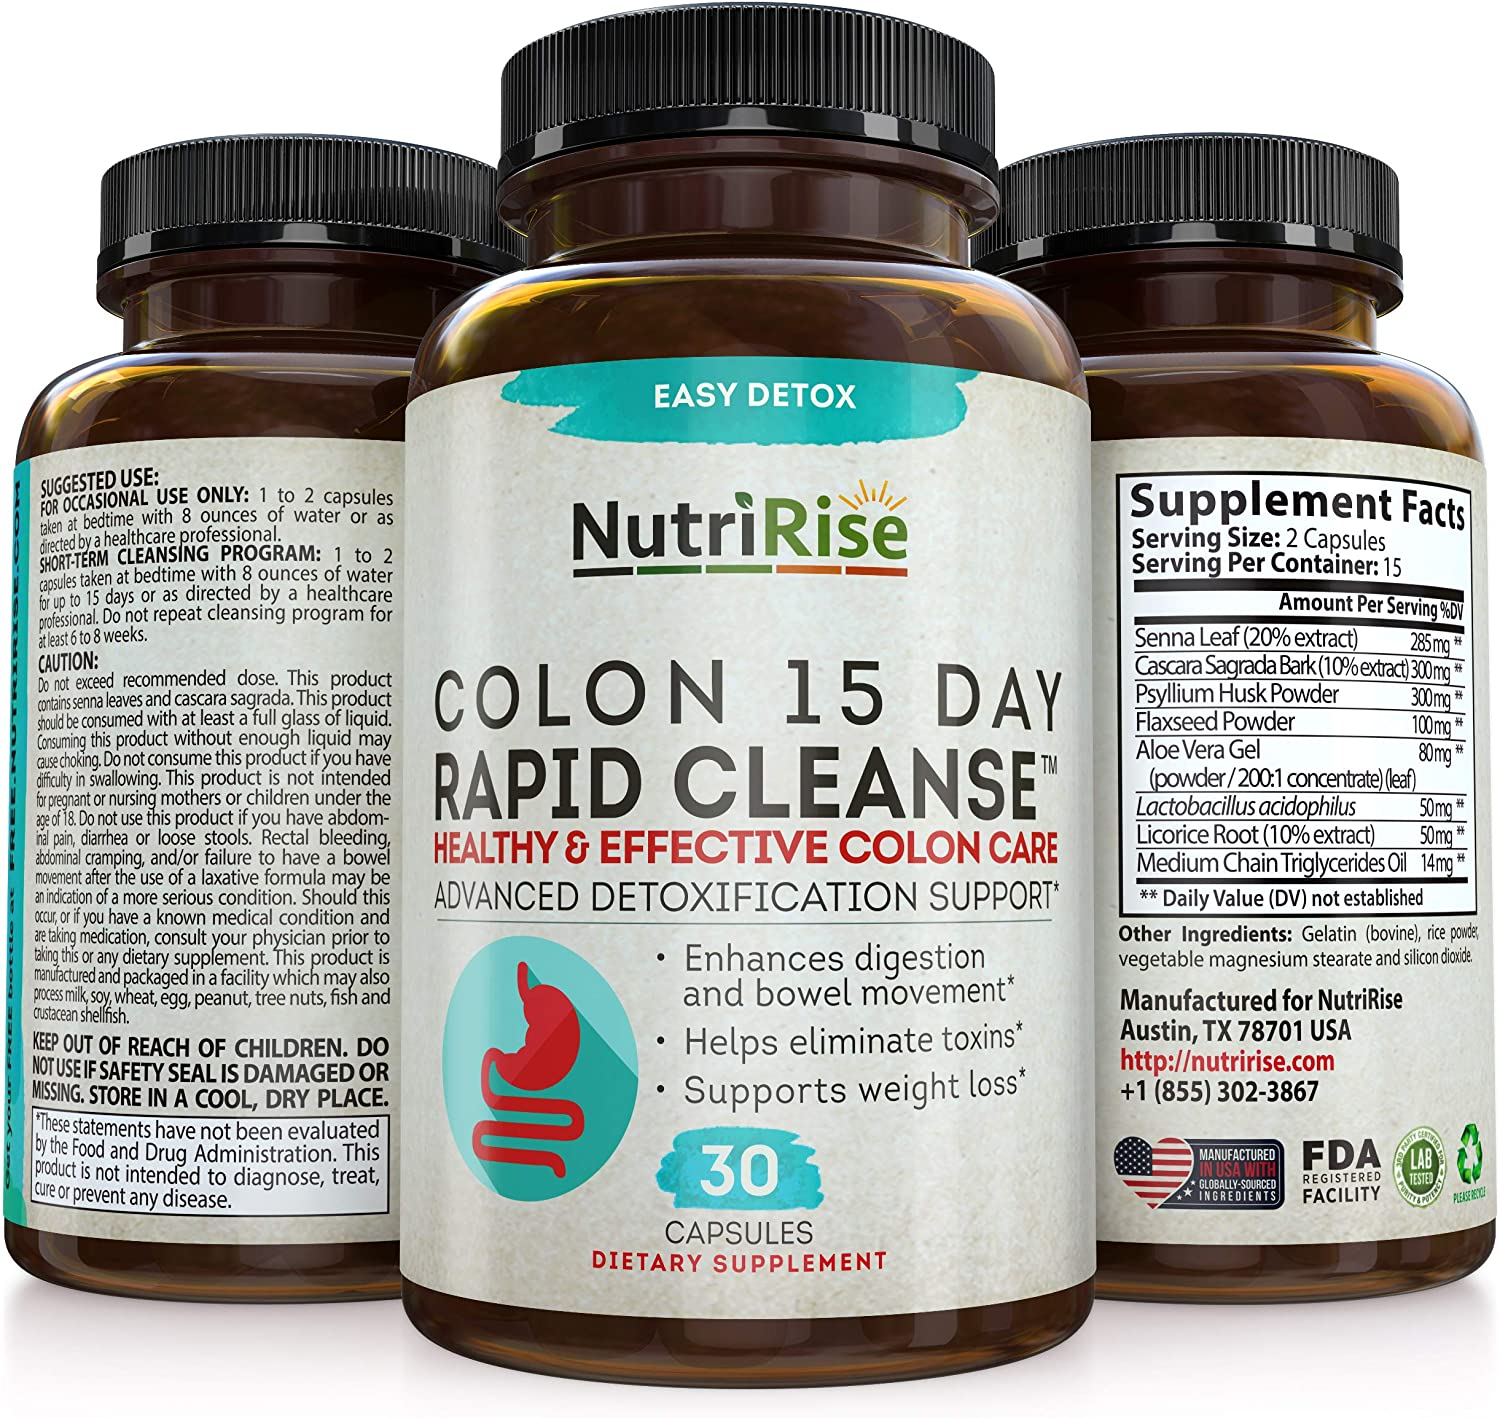 Colon Cleanser Detox for Weight Loss. 15 Day Fast-Acting Extra-Strength Cleanse with Probiotic & Natural Laxatives for Constipation Relief